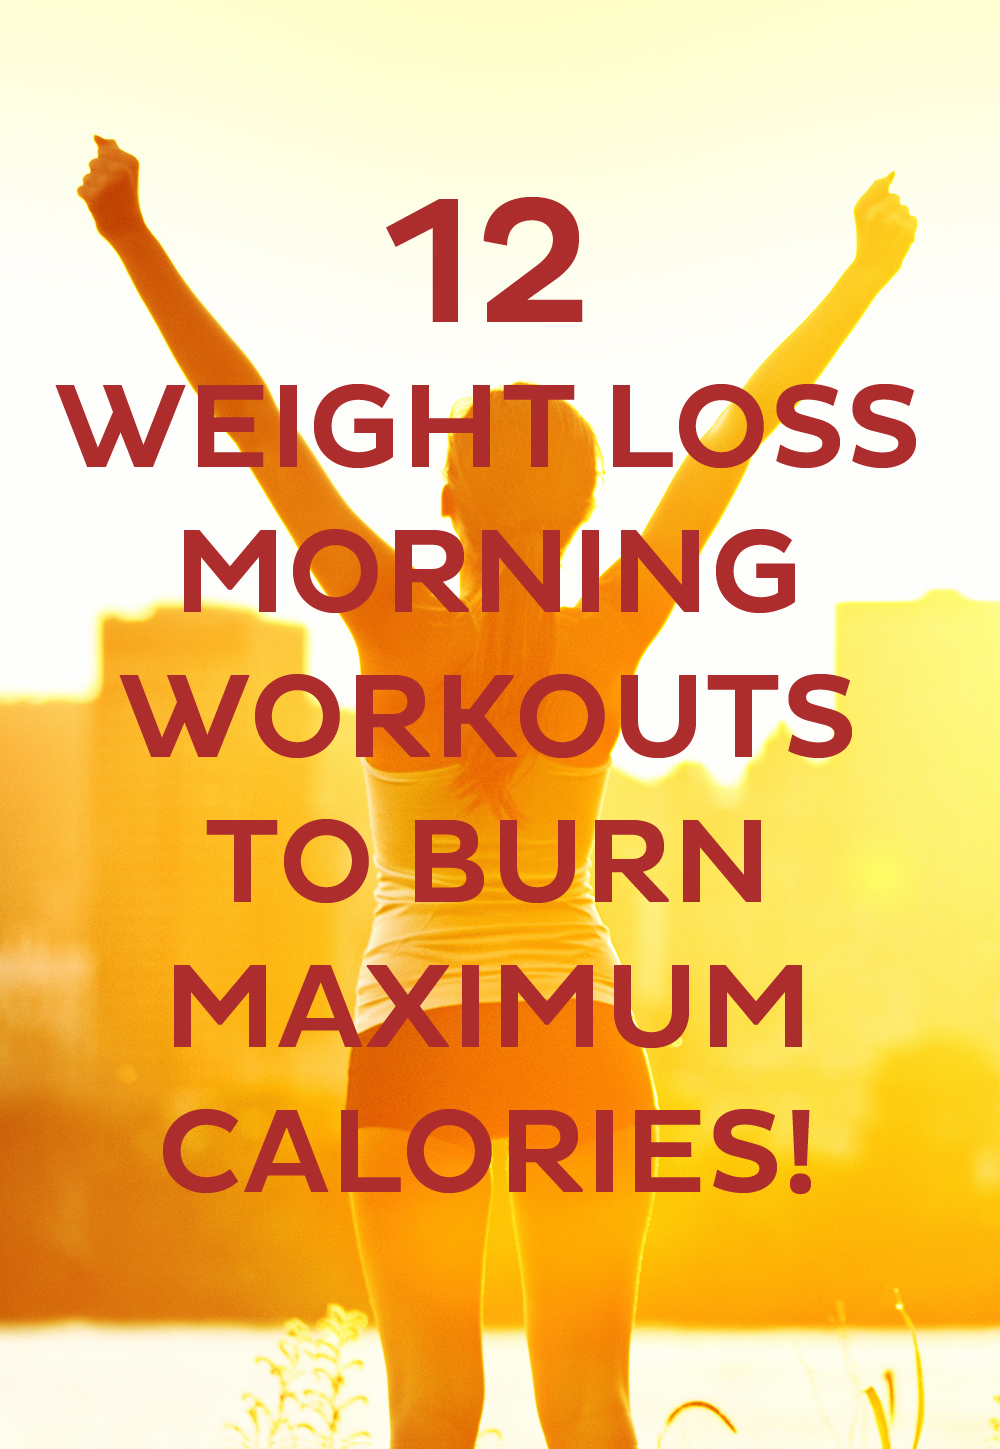 for weight loss exercises in morning